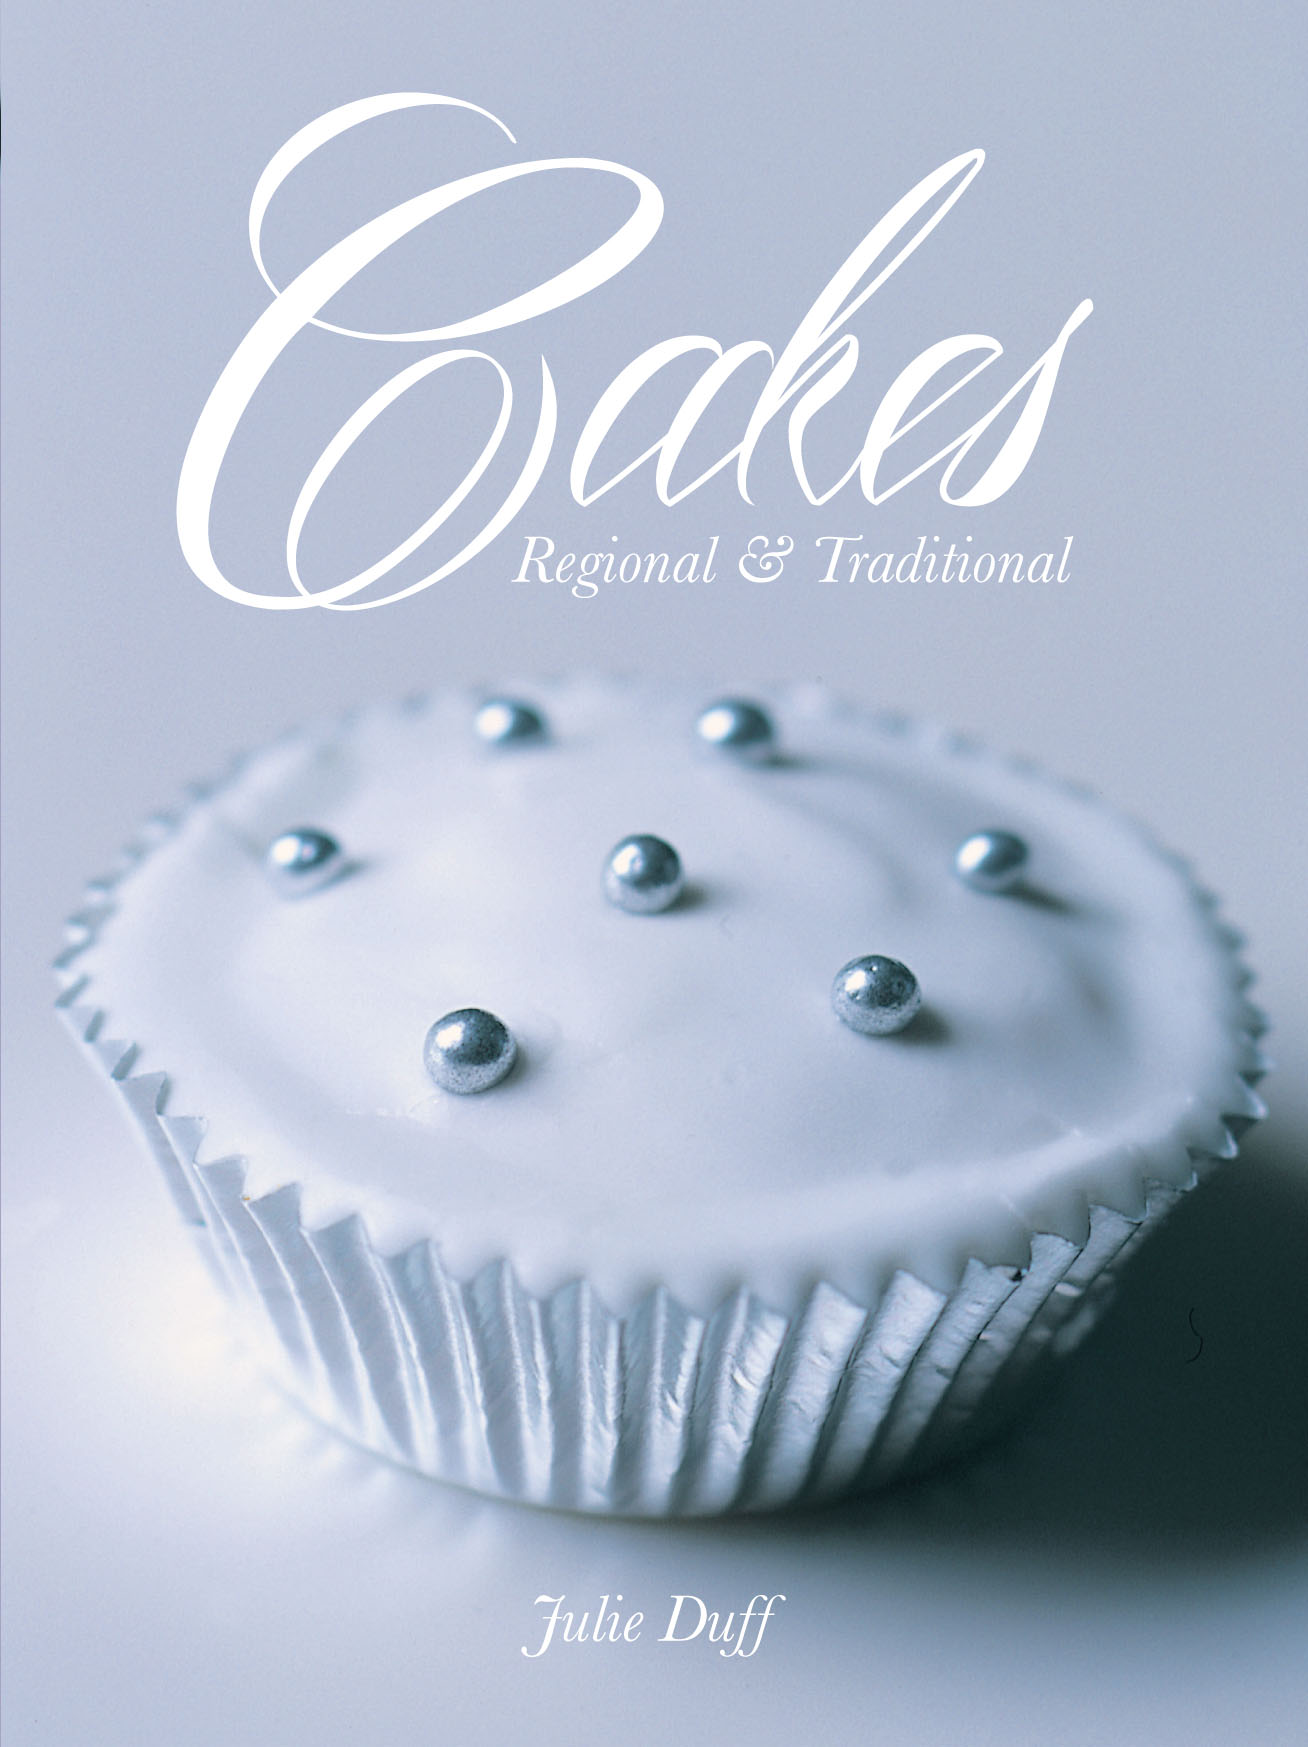 Cakes: Regional & Traditional by Julie Duff